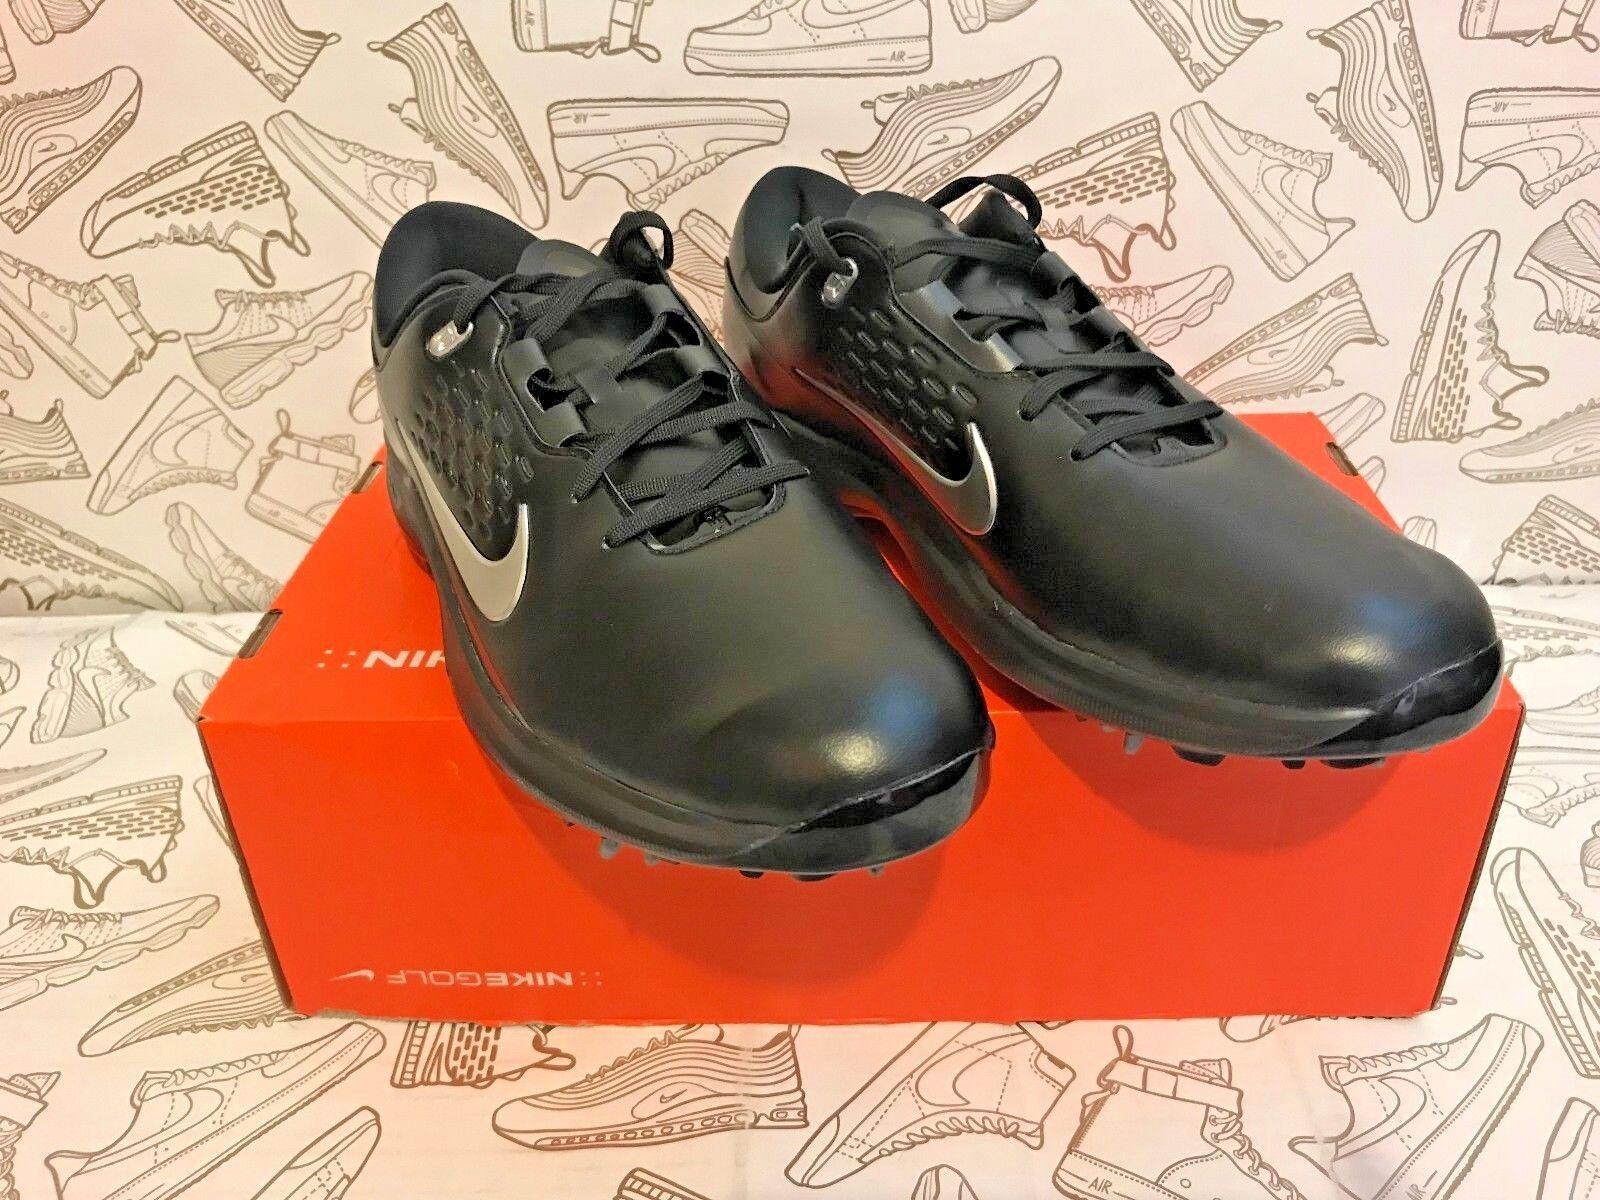 b70a84bd65243 Nike Air Zoom Tw71 Tiger Woods TW Golf Shoes Black Silver Aa1990-002 ...